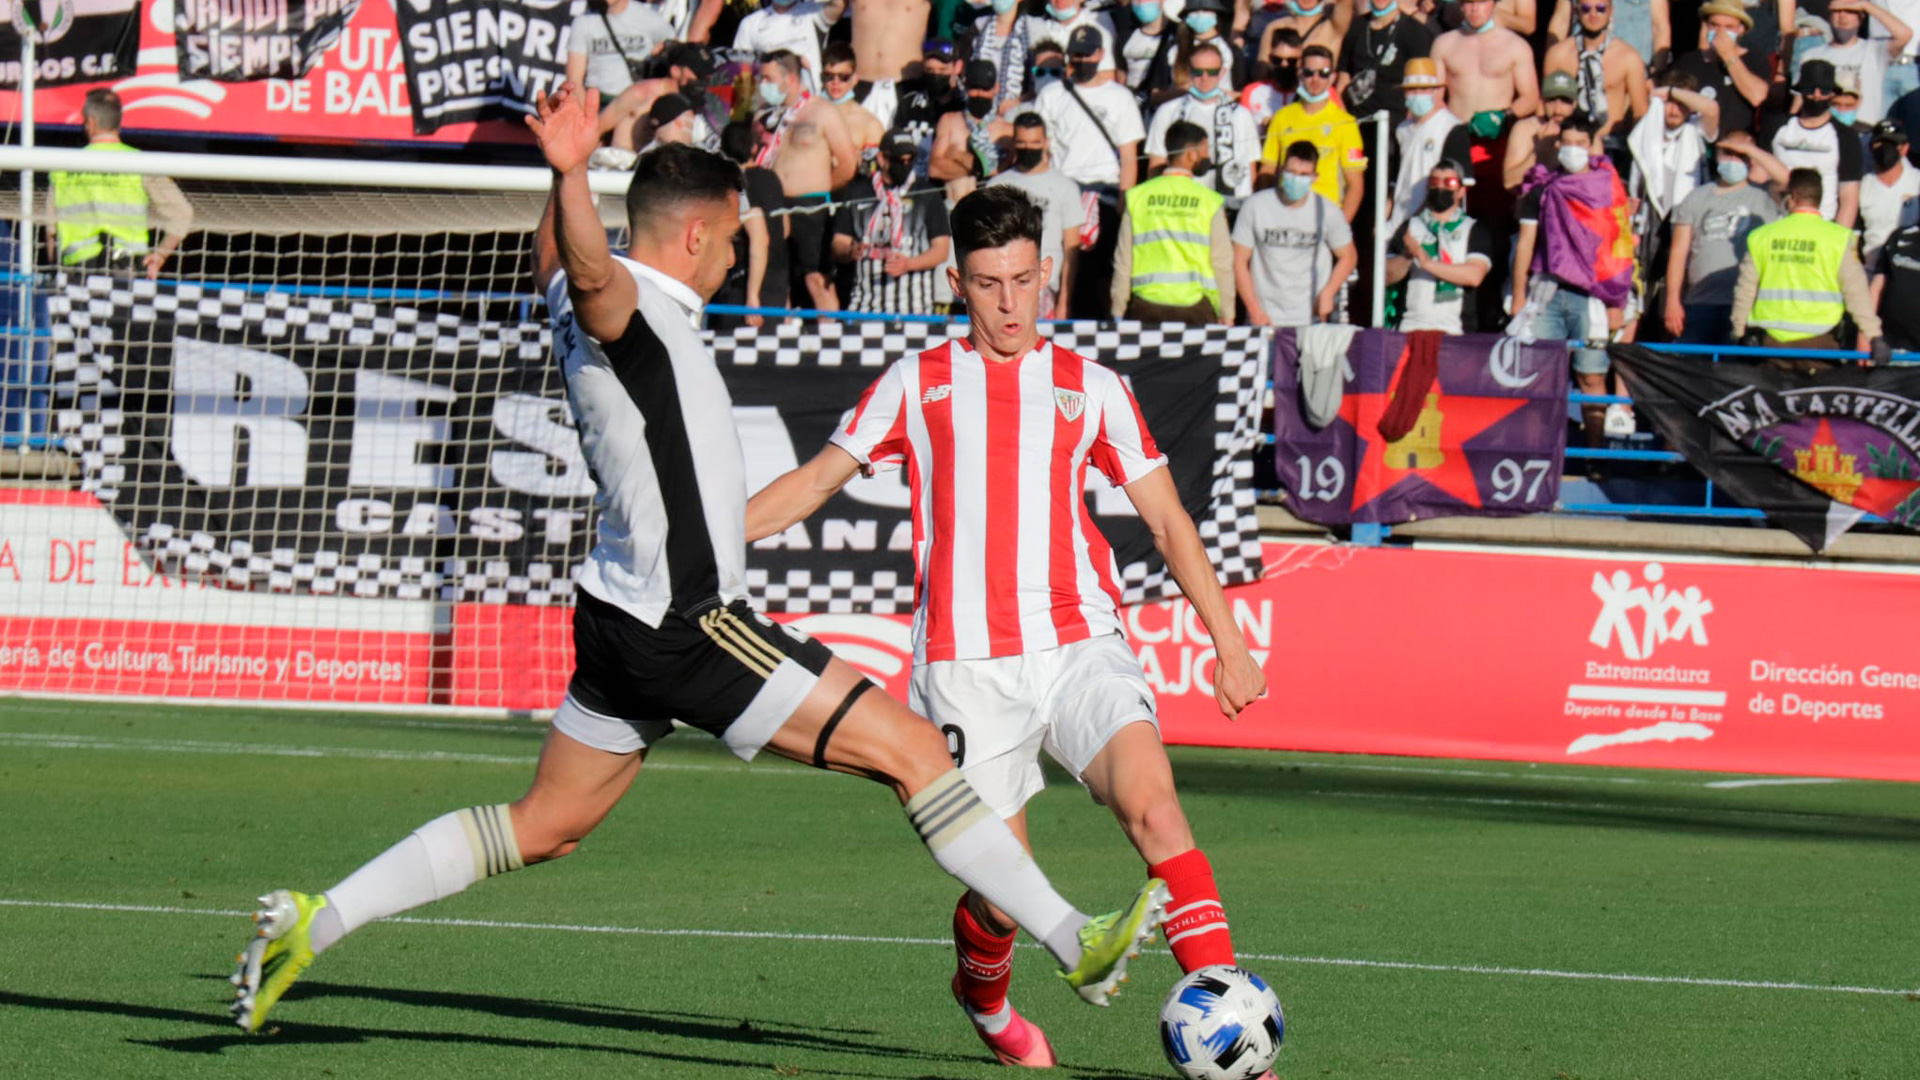 Bilbao Athletic miss out on promotion